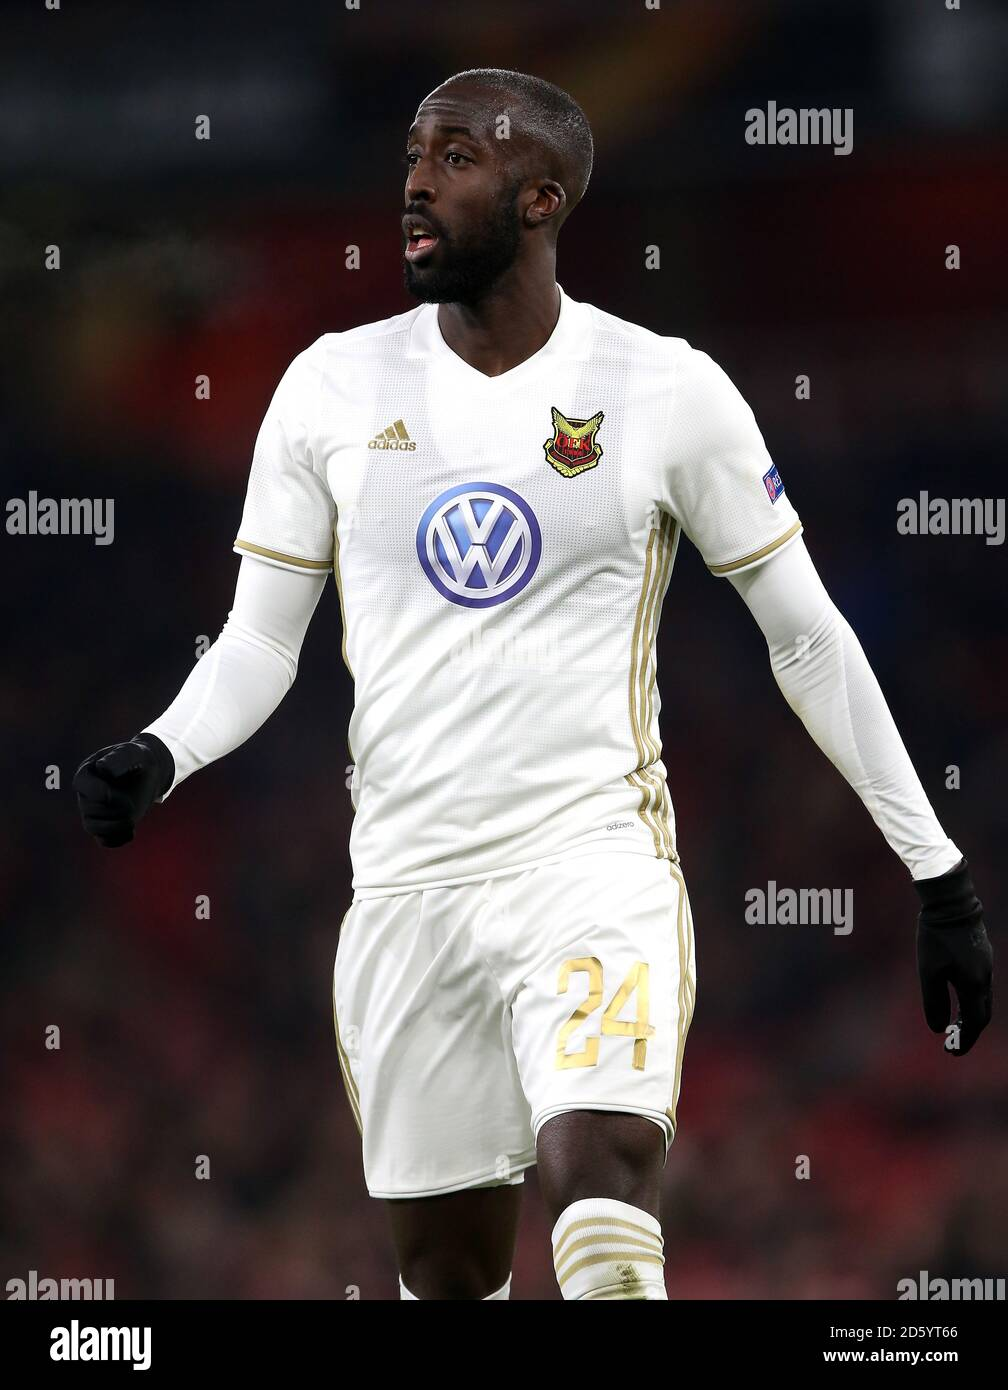 Ostersunds FK's Ronald Mukiibi Stock Photo